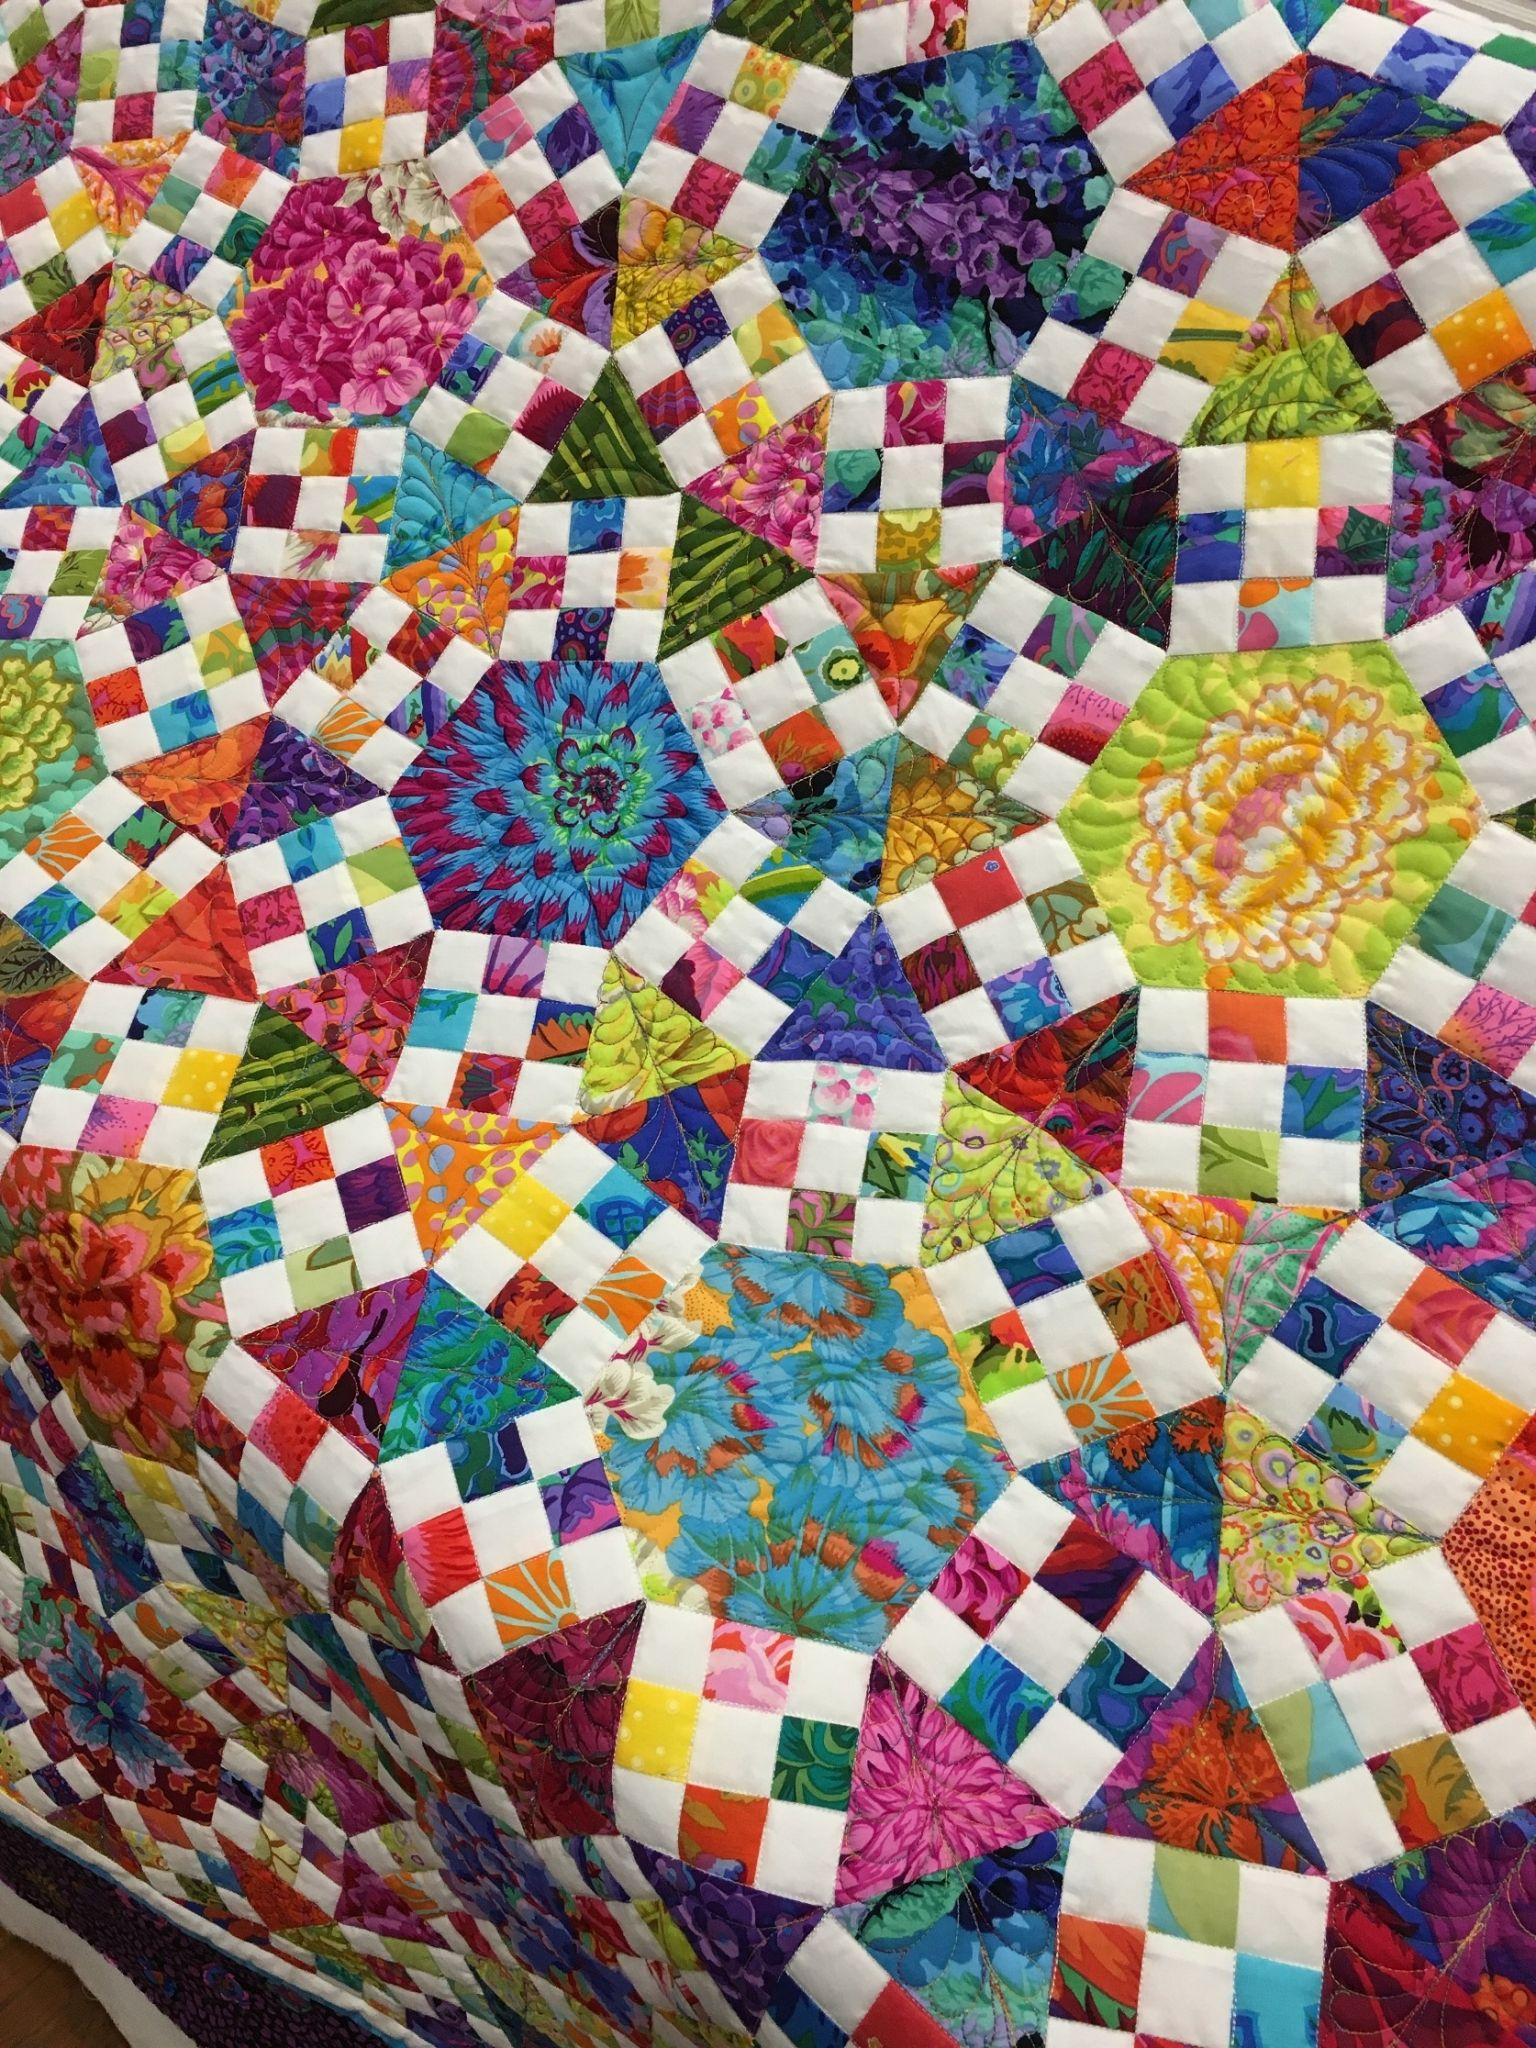 Quilt Guild's annual event brings a little joy to the world ... : quilting event - Adamdwight.com